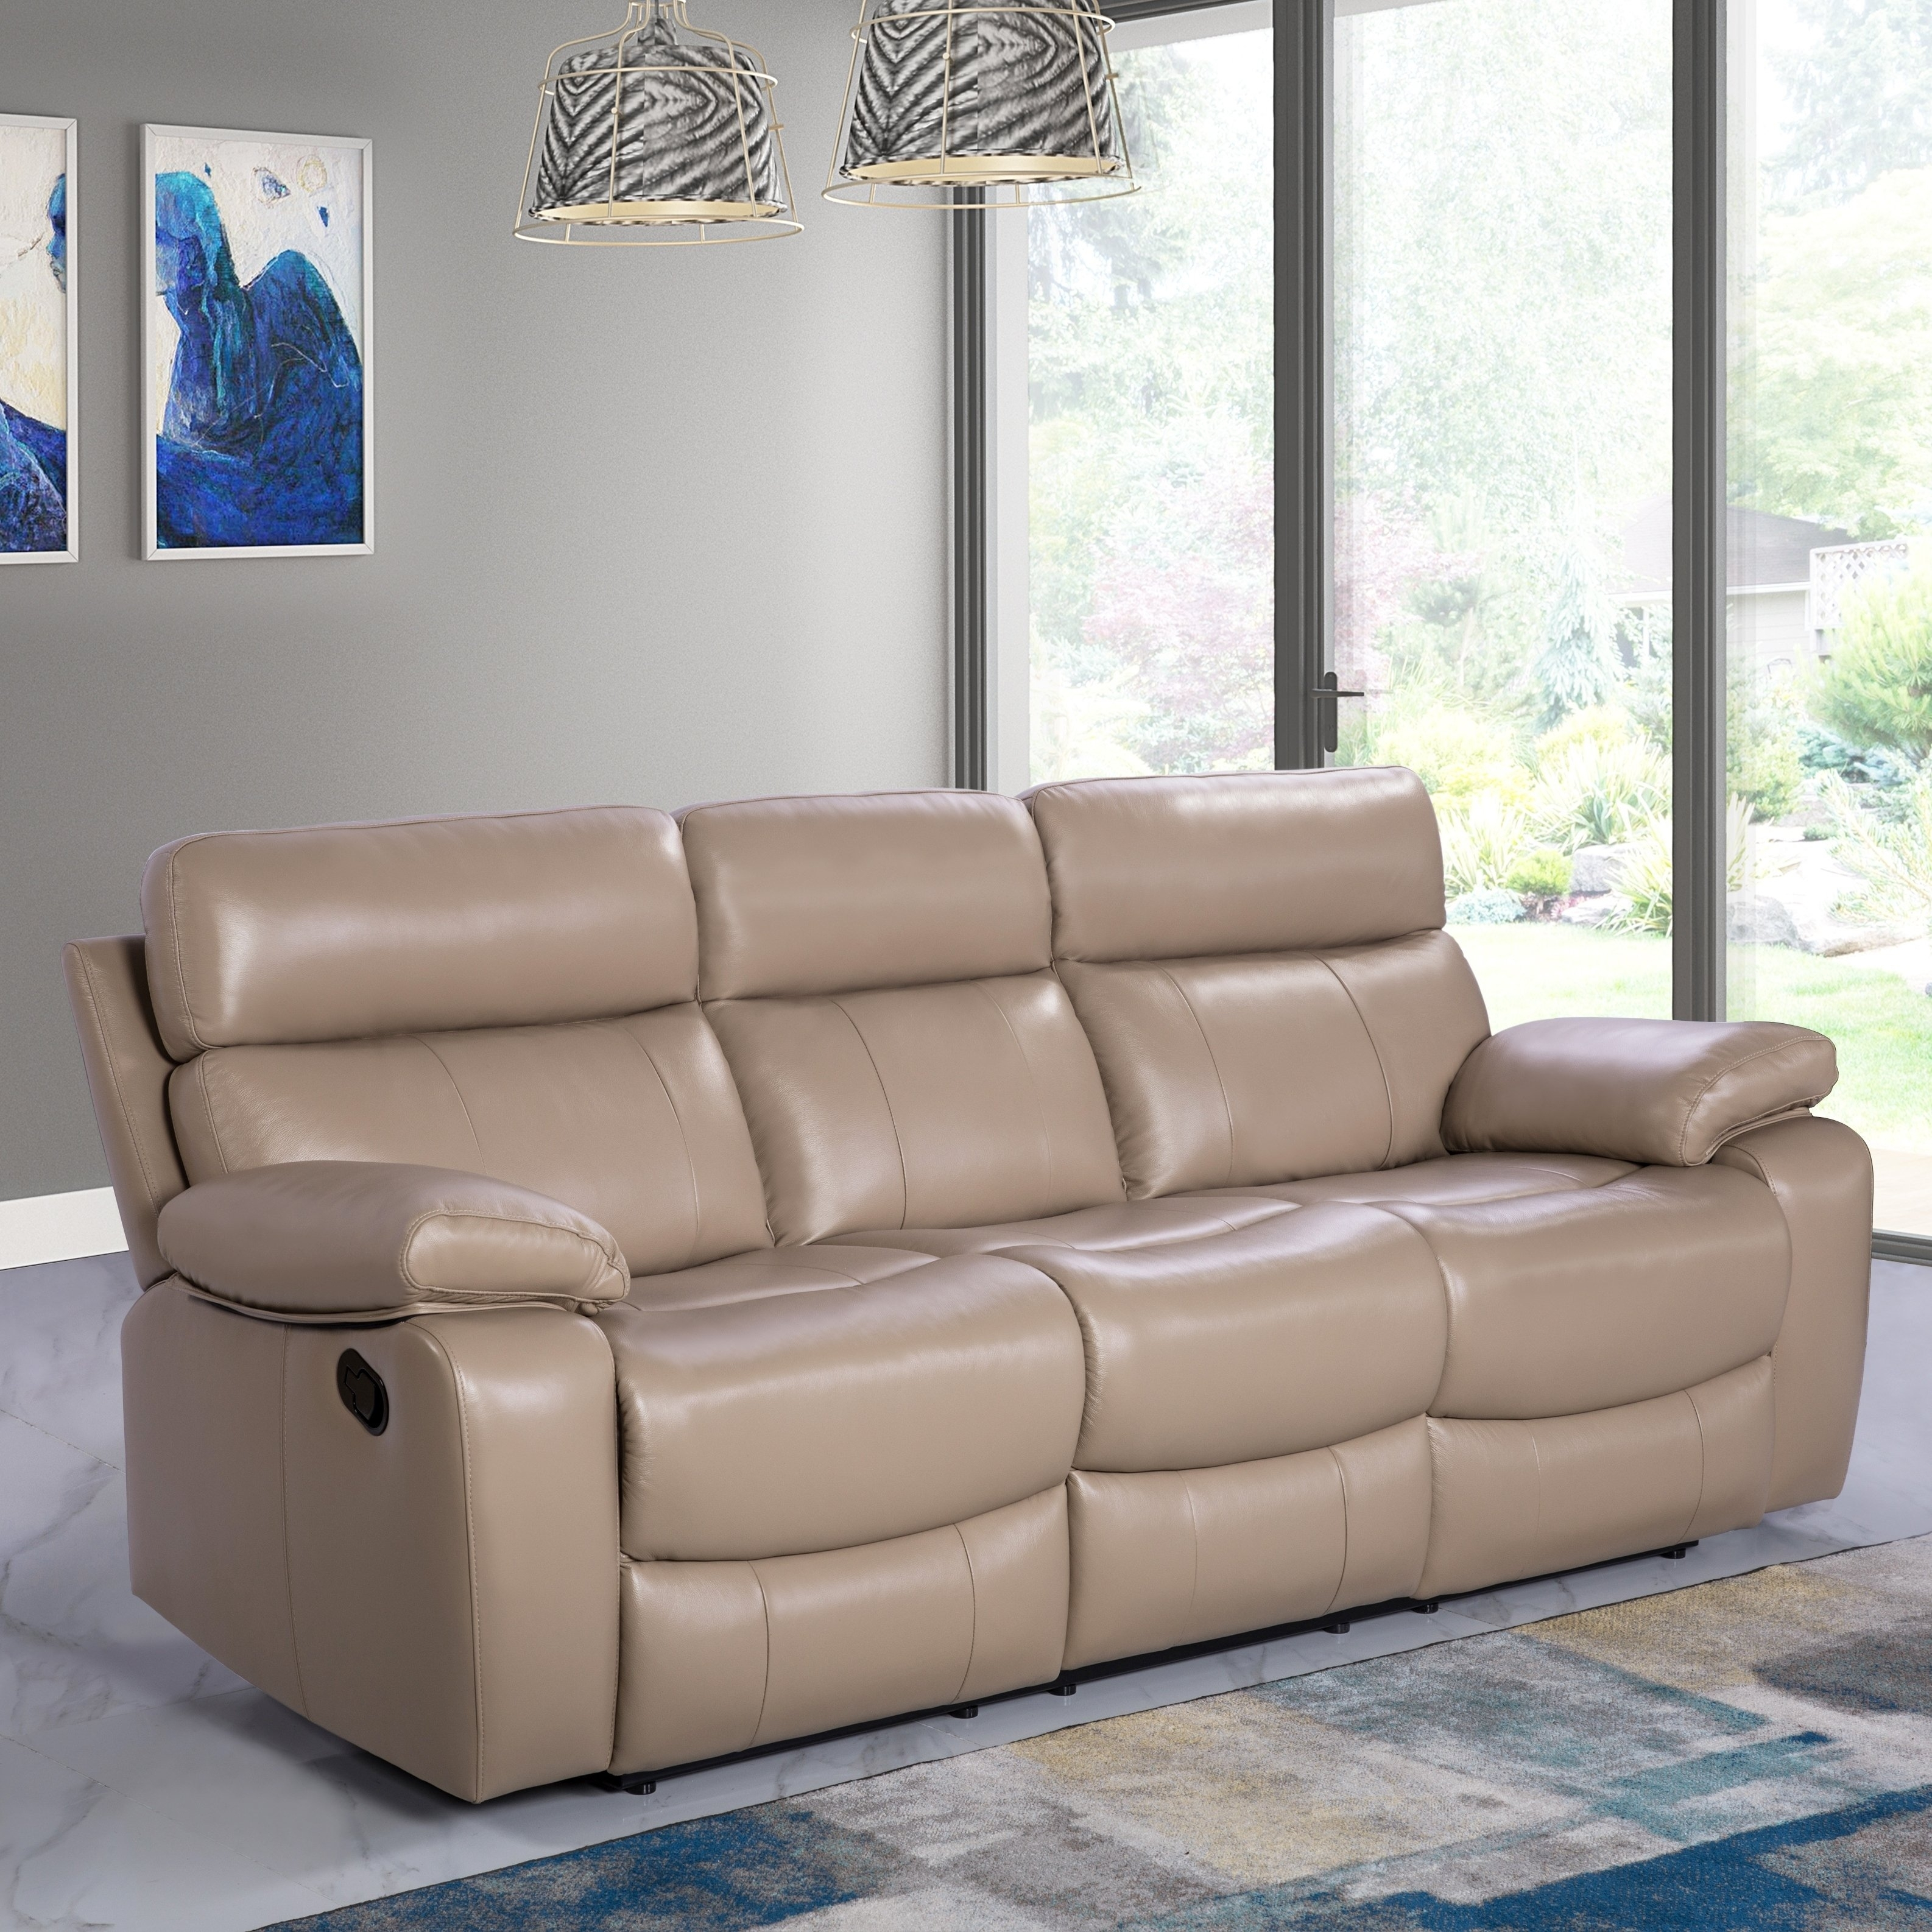 Beige Leather Reclining Sofa | Baci Living Room Pertaining To Clyde Saddle 3 Piece Power Reclining Sectionals With Power Headrest & Usb (Image 6 of 25)